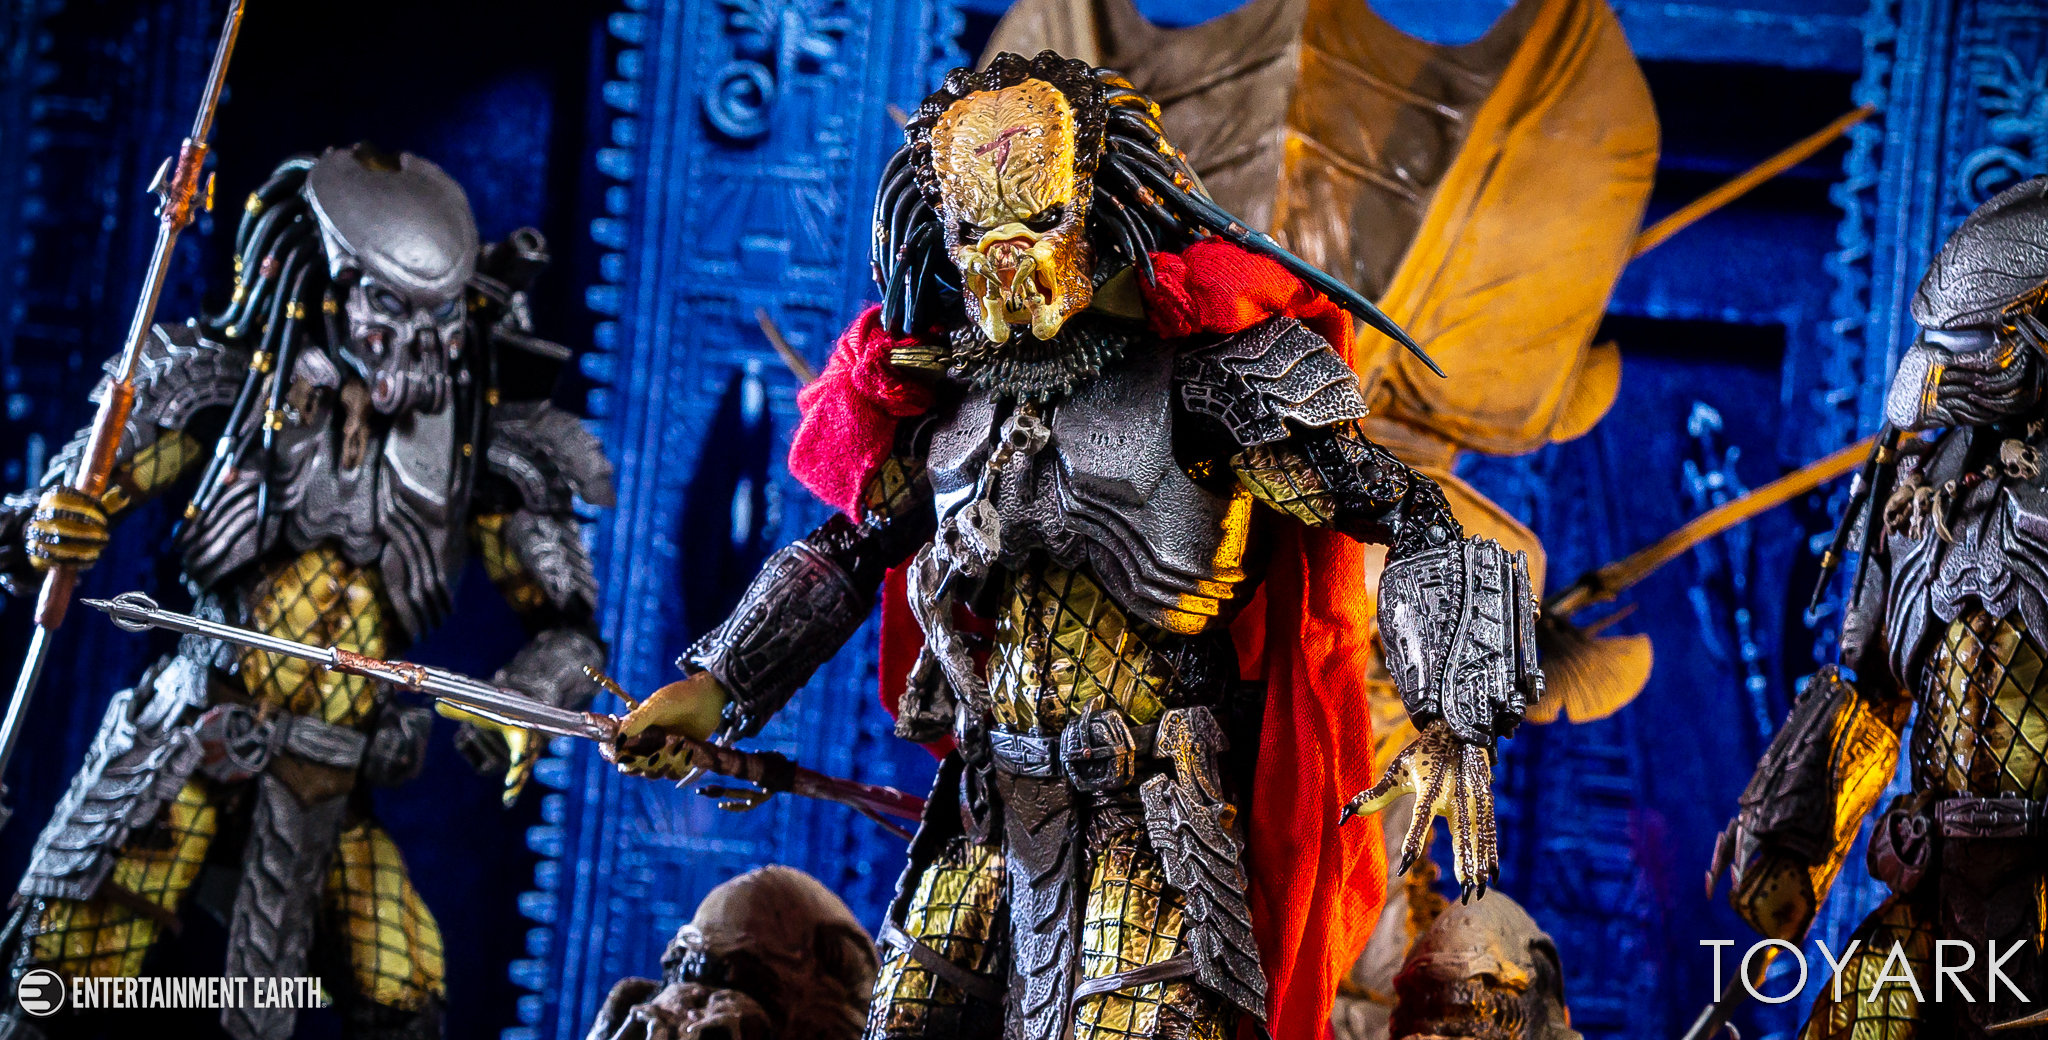 https://news.toyark.com/wp-content/uploads/sites/4/2018/05/NECA-Predator-Throne-042.jpg